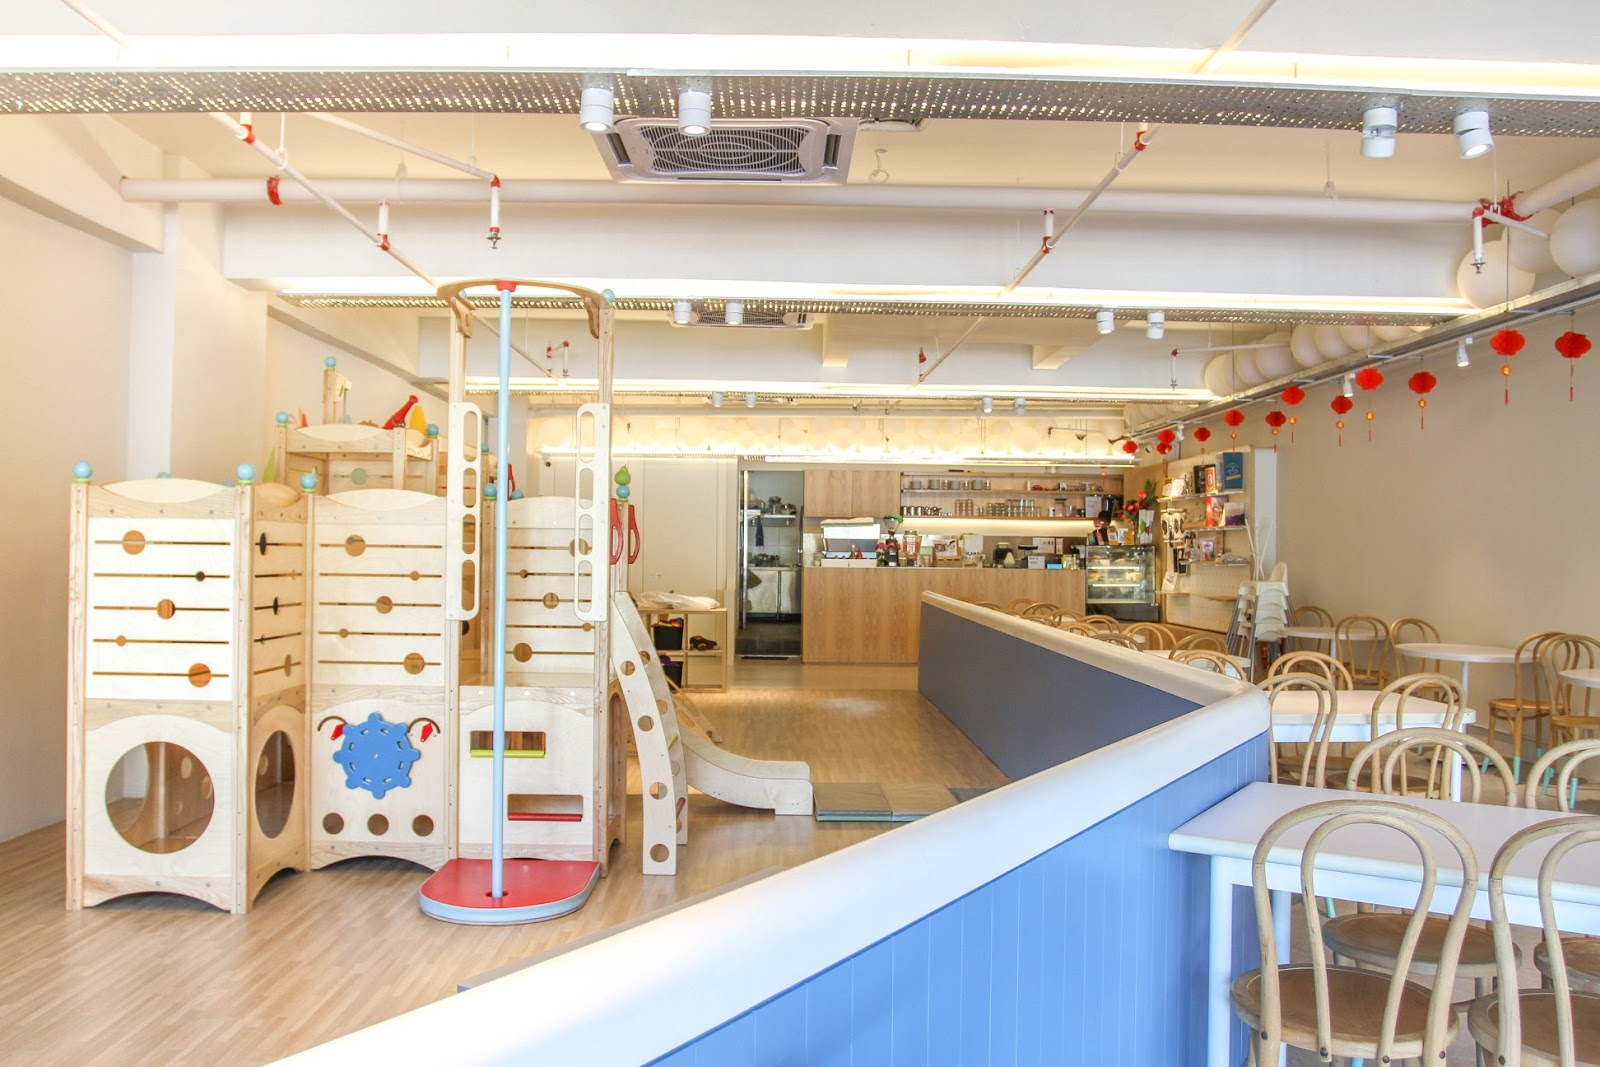 Playground The Cafe: Health and safety aren't child's play at kids-friendly cafe